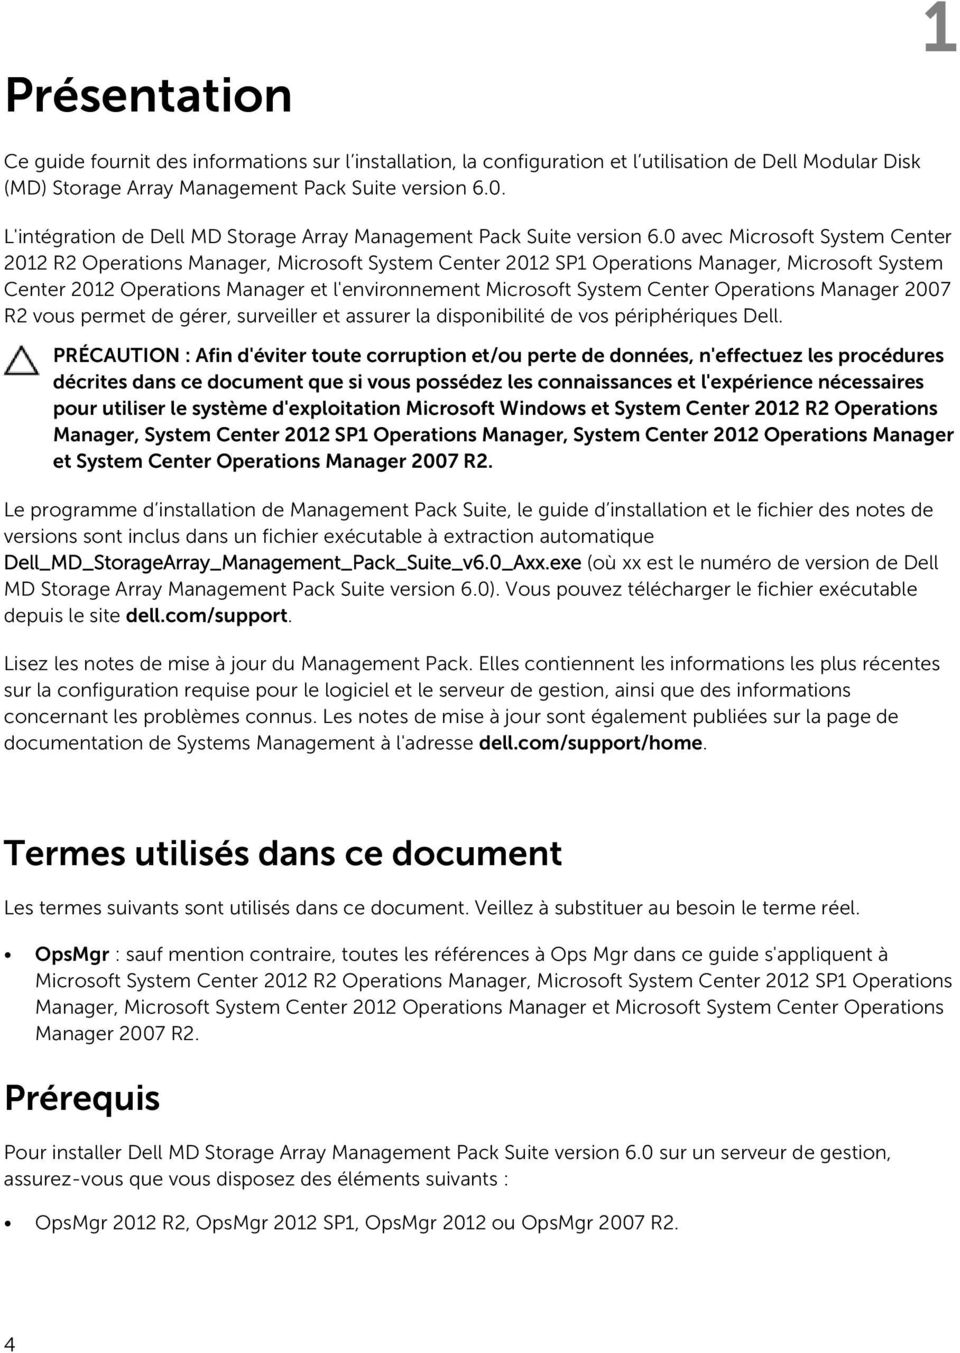 0 avec Microsoft System Center 2012 R2 Operations Manager, Microsoft System Center 2012 SP1 Operations Manager, Microsoft System Center 2012 Operations Manager et l'environnement Microsoft System